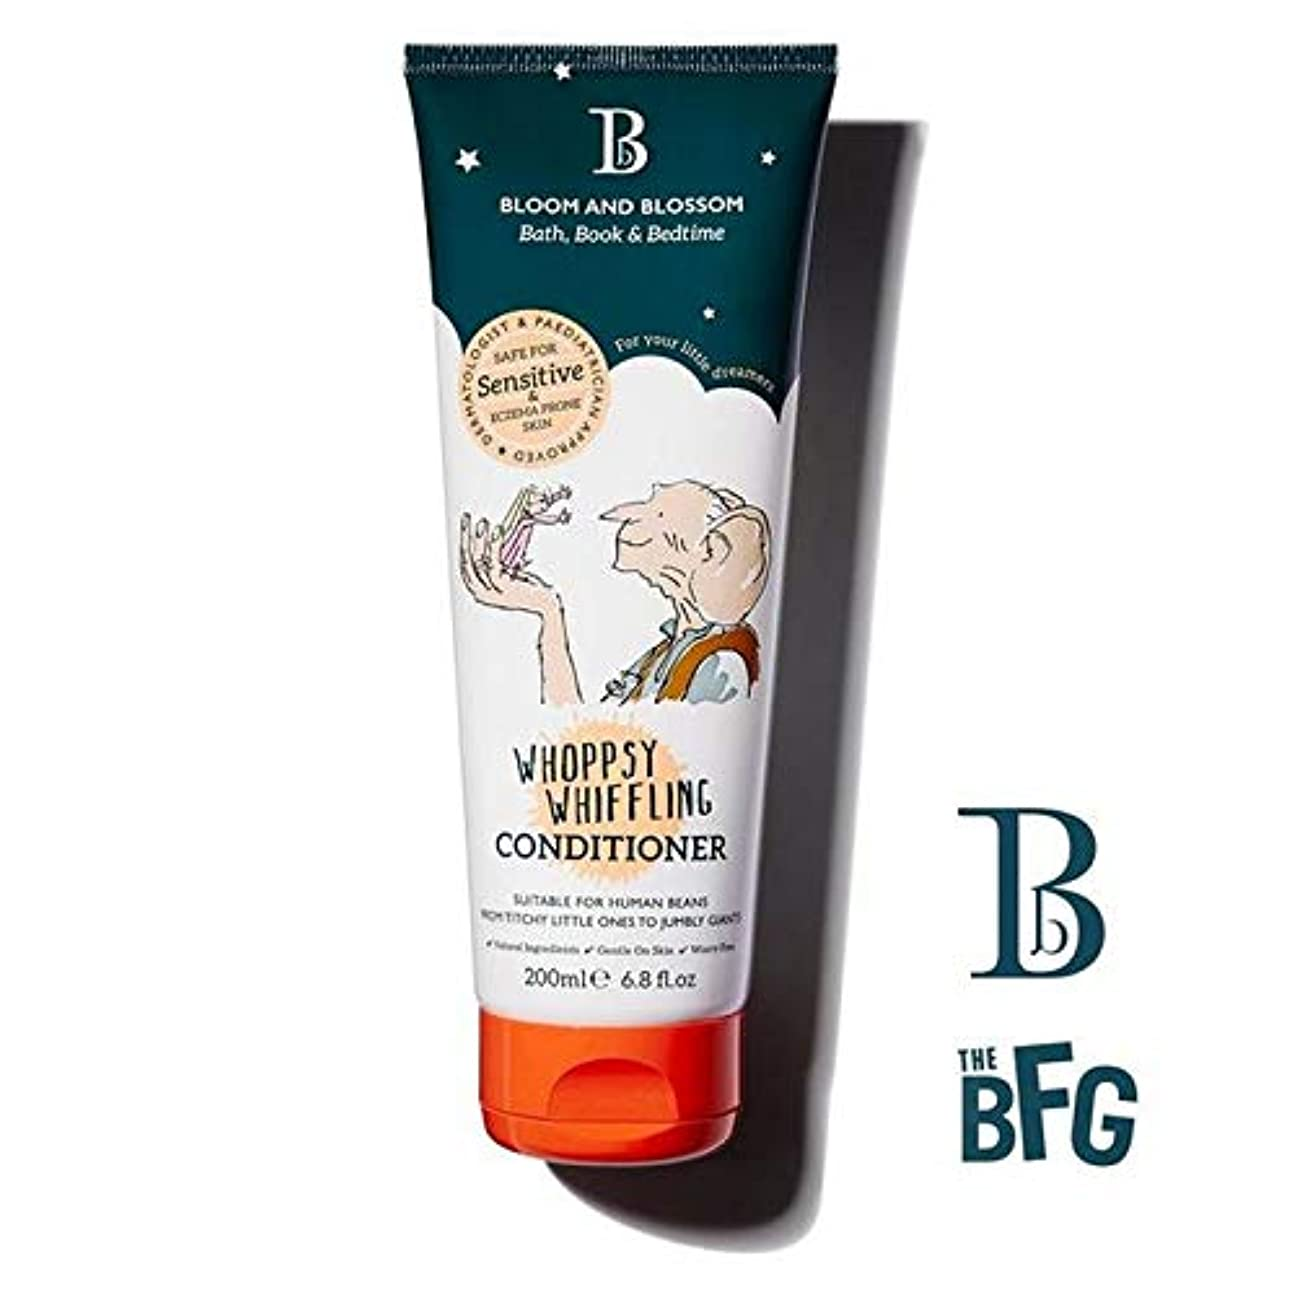 [Bloom and Blossom ] Bfgコンディショナーをブルーム&花 - Bloom & Blossom The BFG Conditioner [並行輸入品]